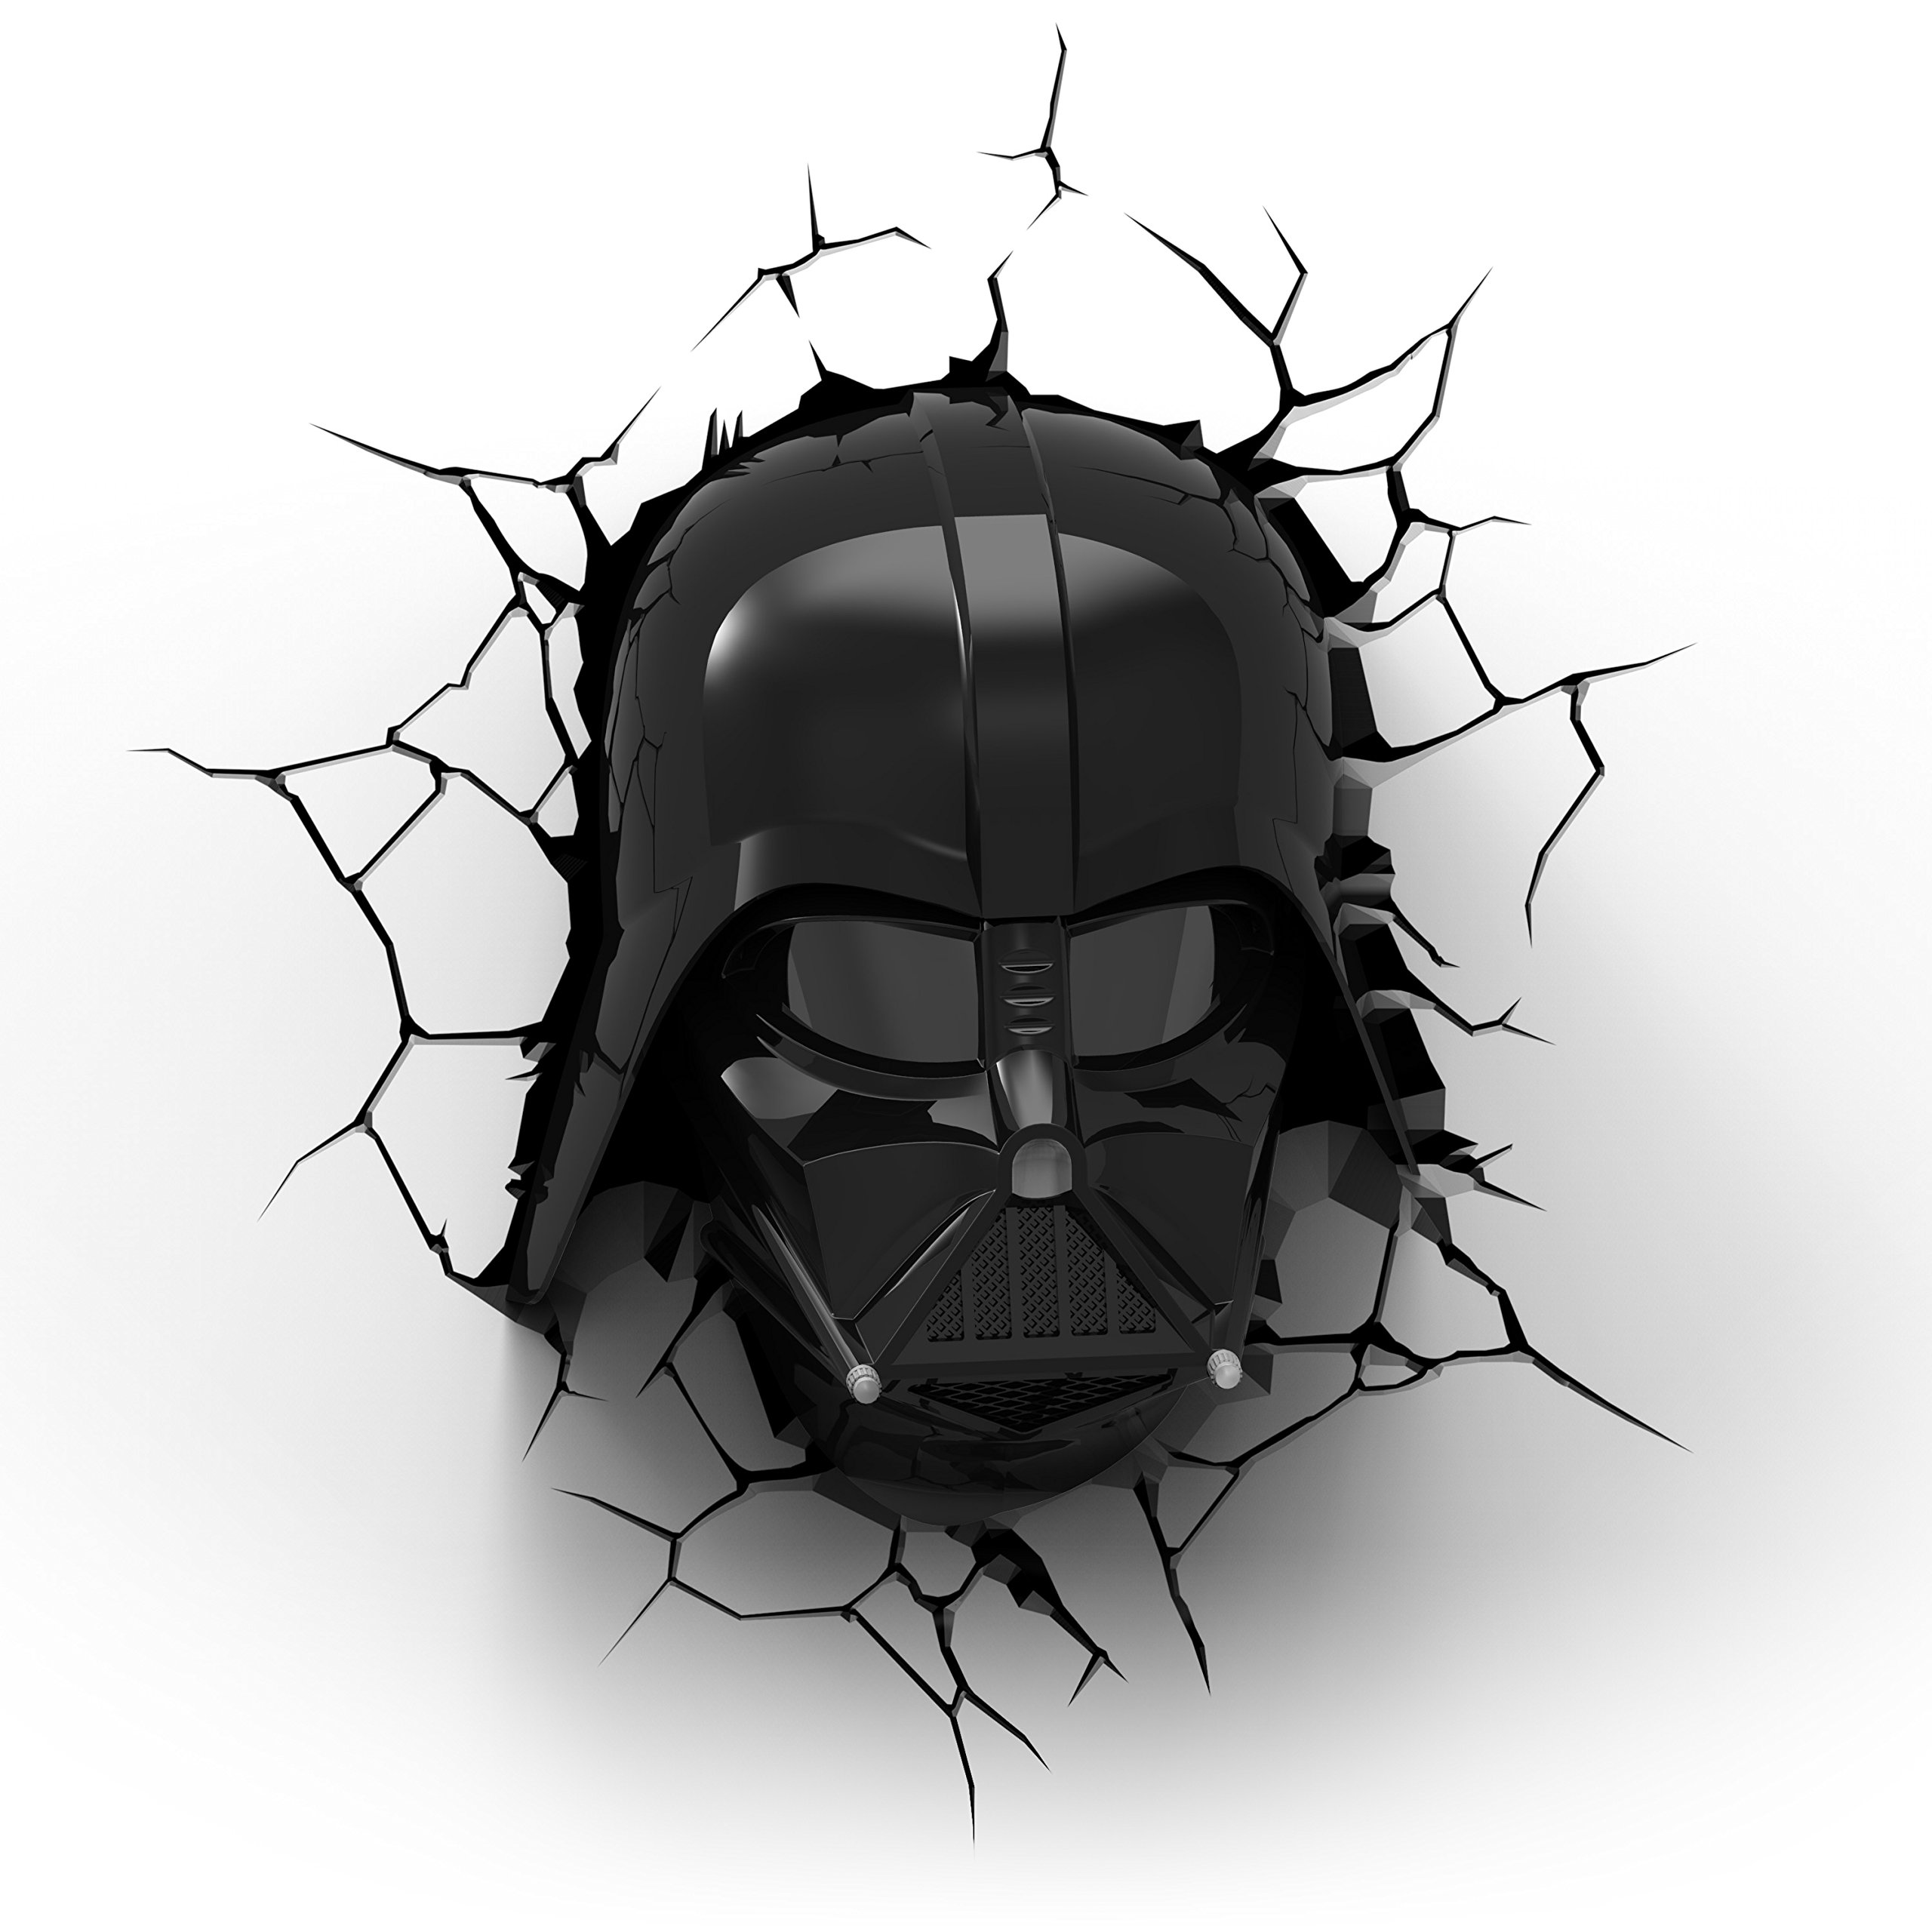 Star Wars Darth Vader 3D Wall Light With Remote Control Star Wars Movie